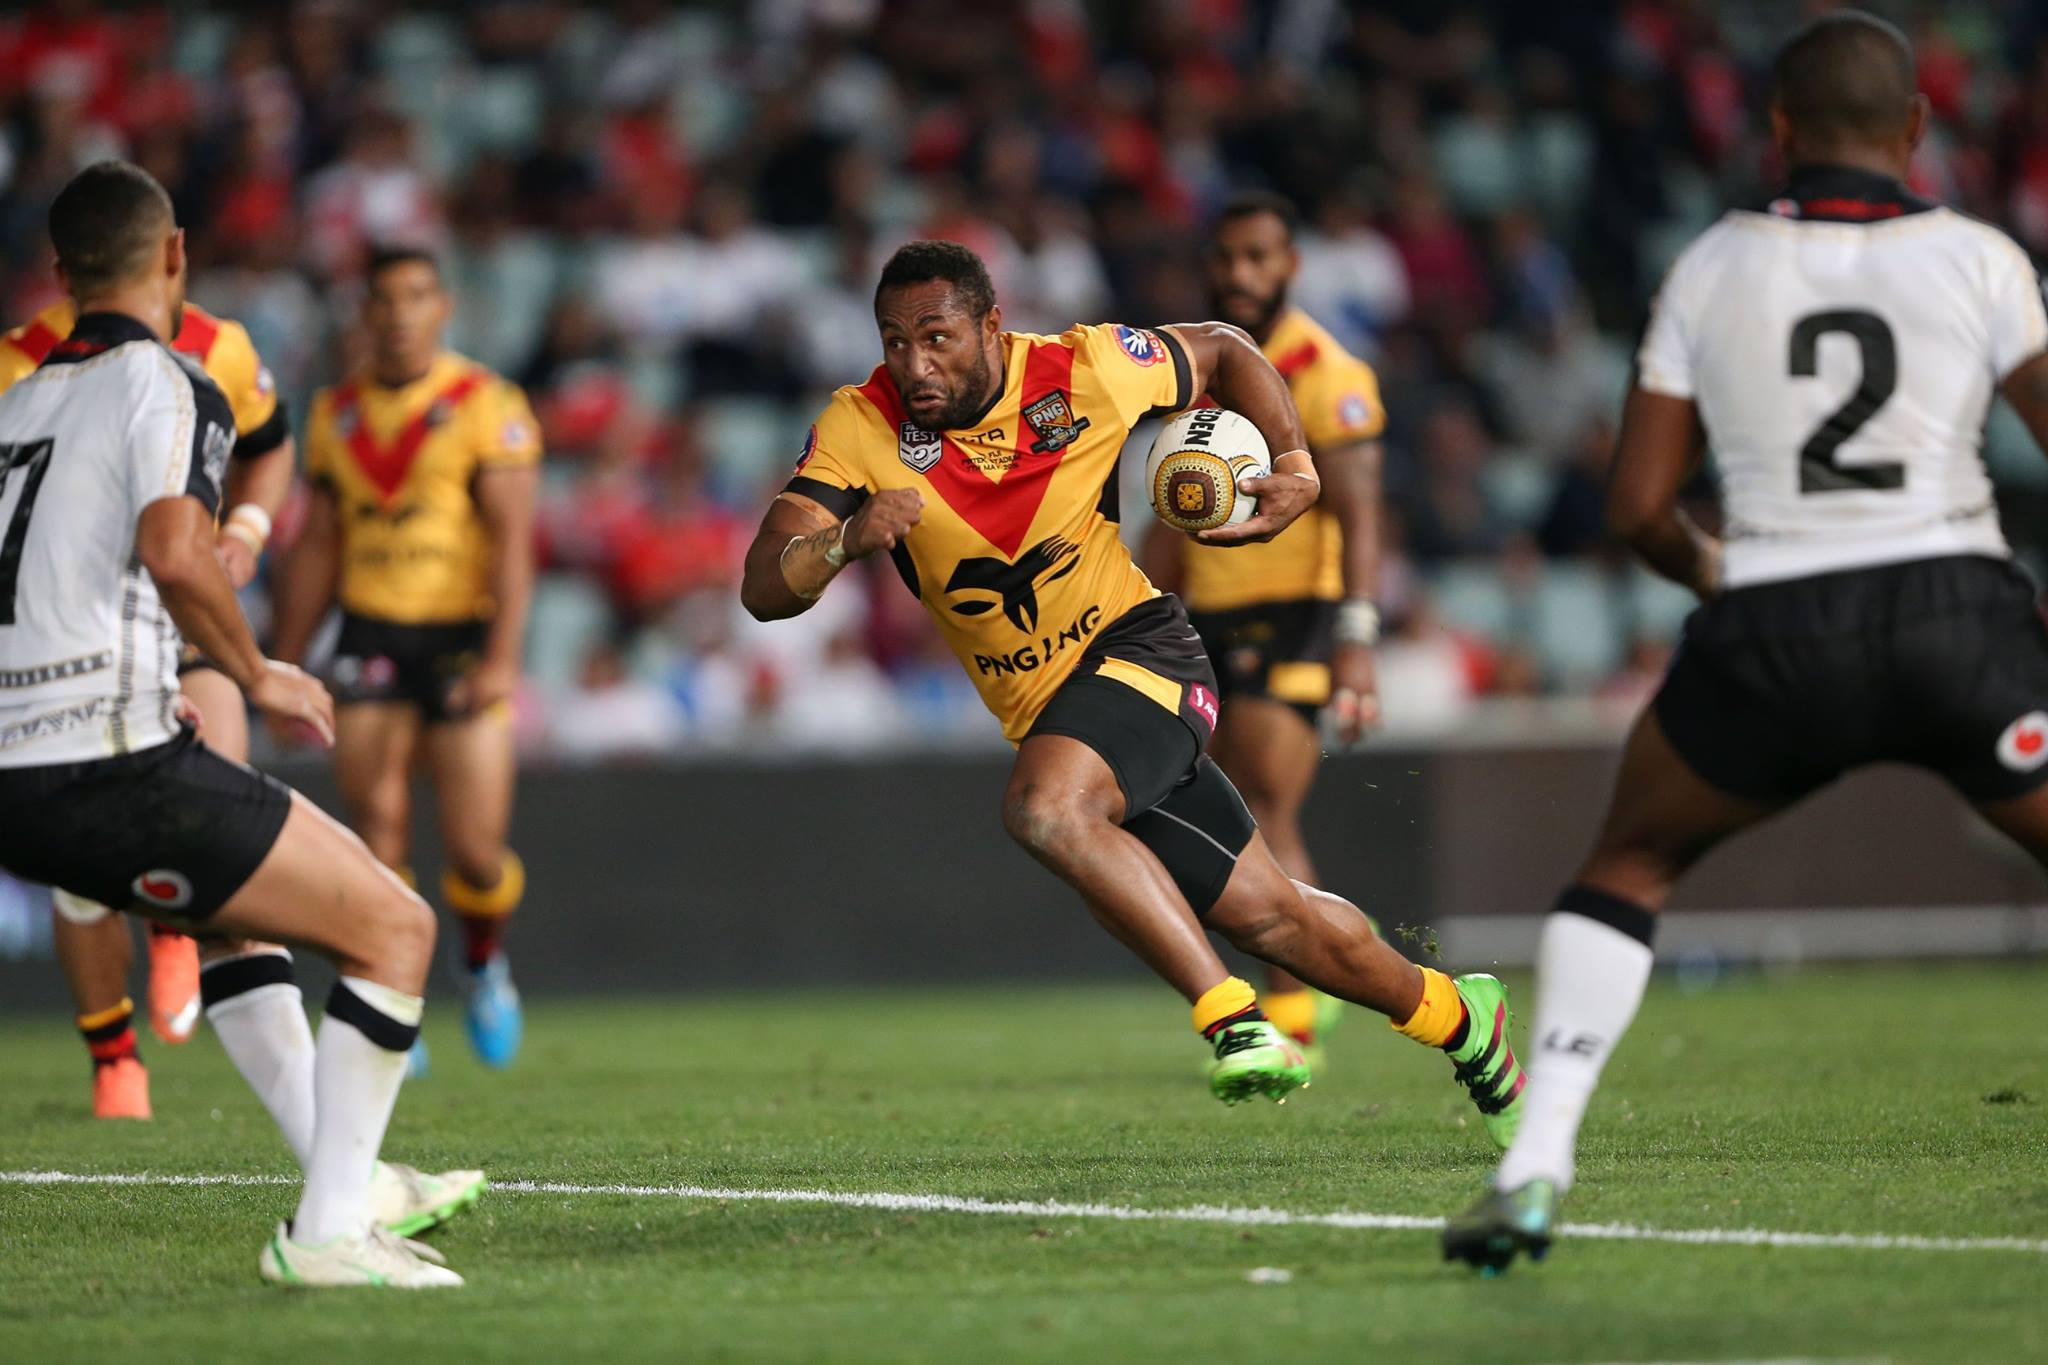 Papua New Guinea make large strides in World Rankings